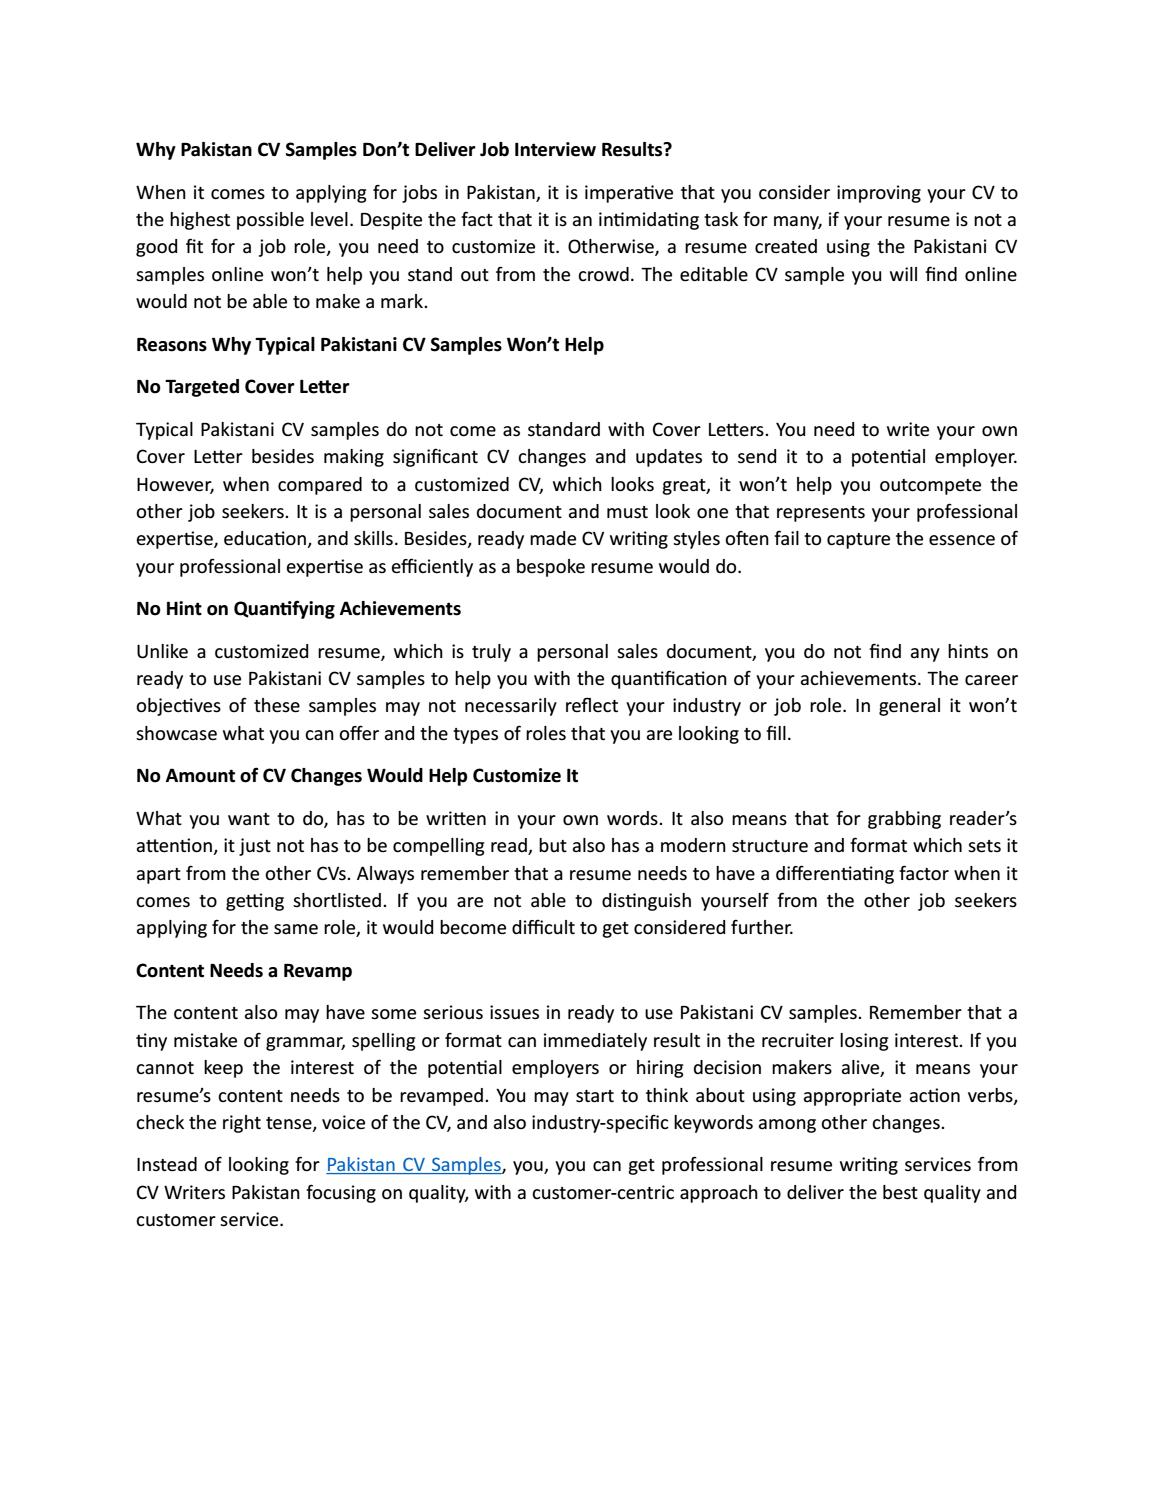 cv samples don deliver job interview results by cvwriterspakistan issuu without resume Resume Job Interview Without Resume